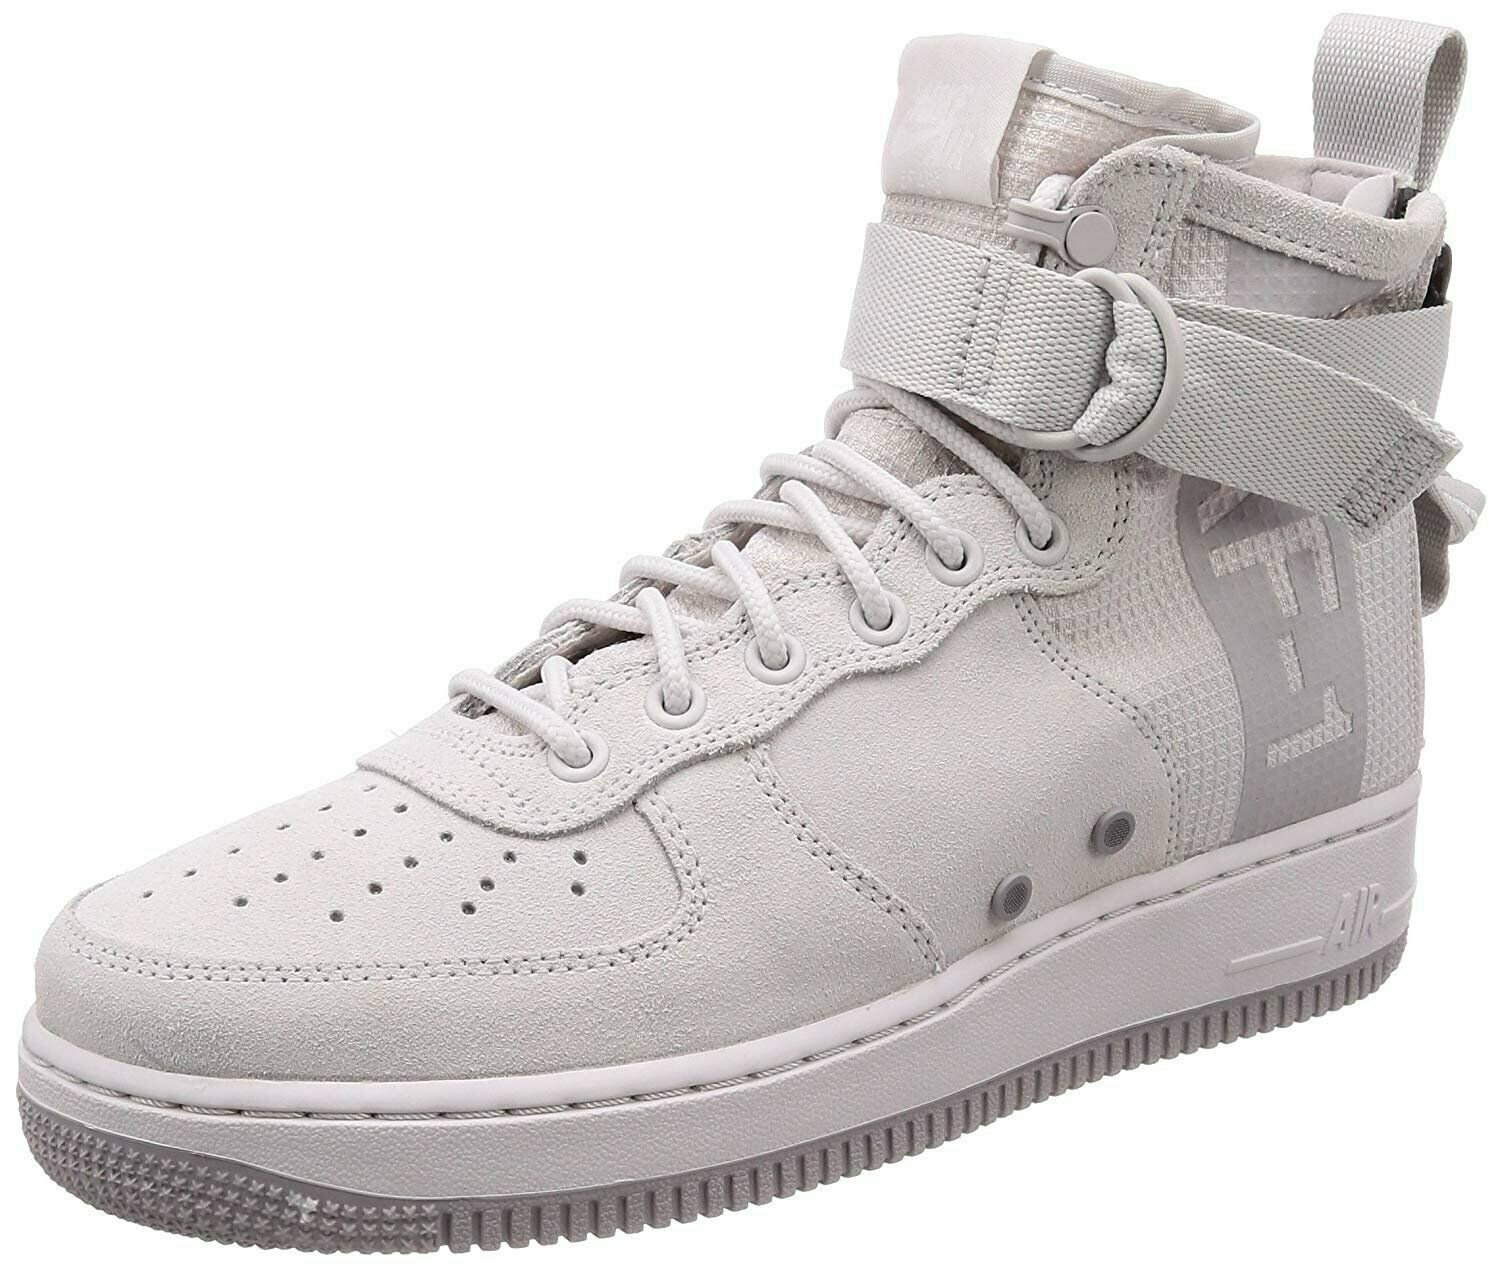 Nike SF Air Force 1 Mid Men's Sneakers